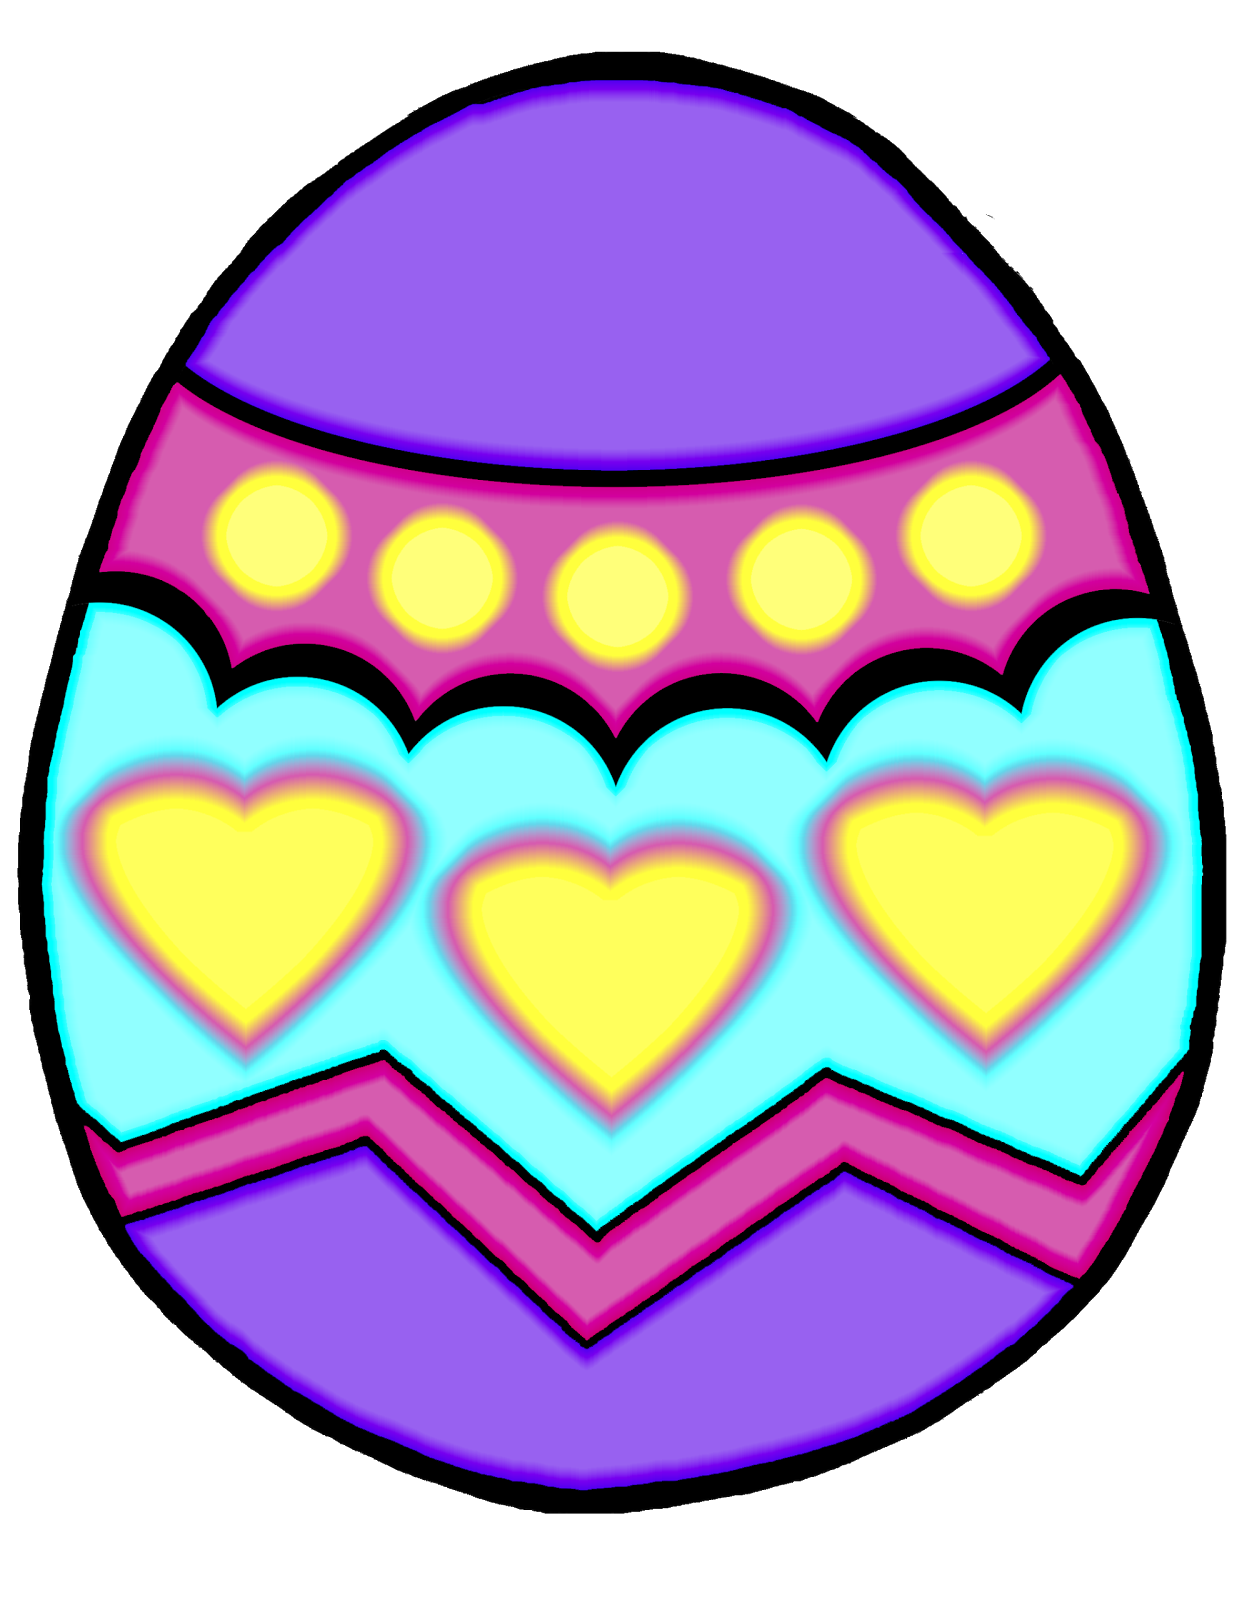 Eggs clipart animated, Eggs animated Transparent FREE for.